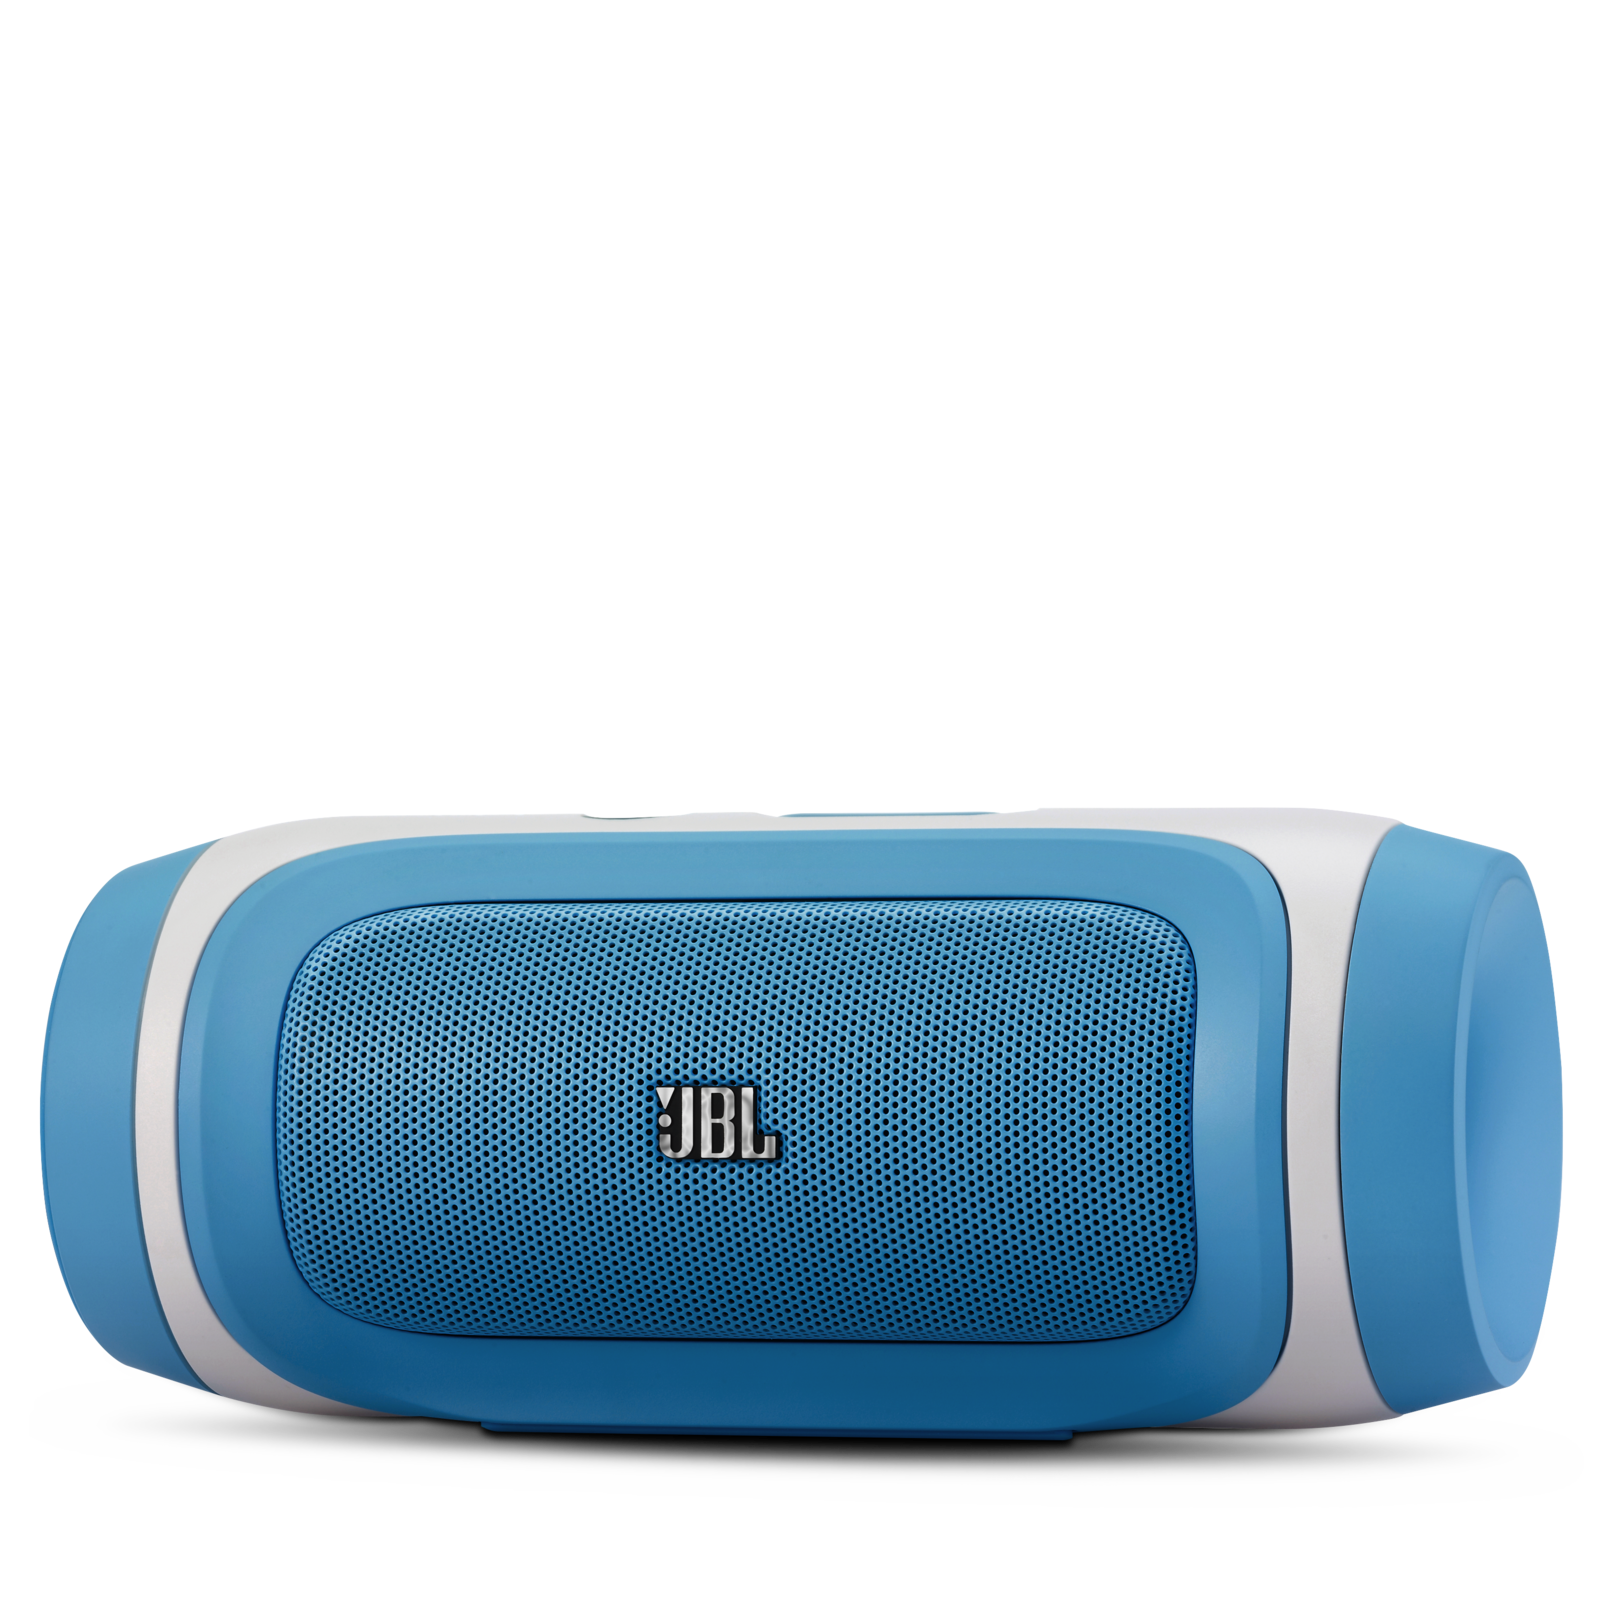 JBL Charge - Blue-Z - Portable Wireless Bluetooth Speaker with USB Charger - Hero